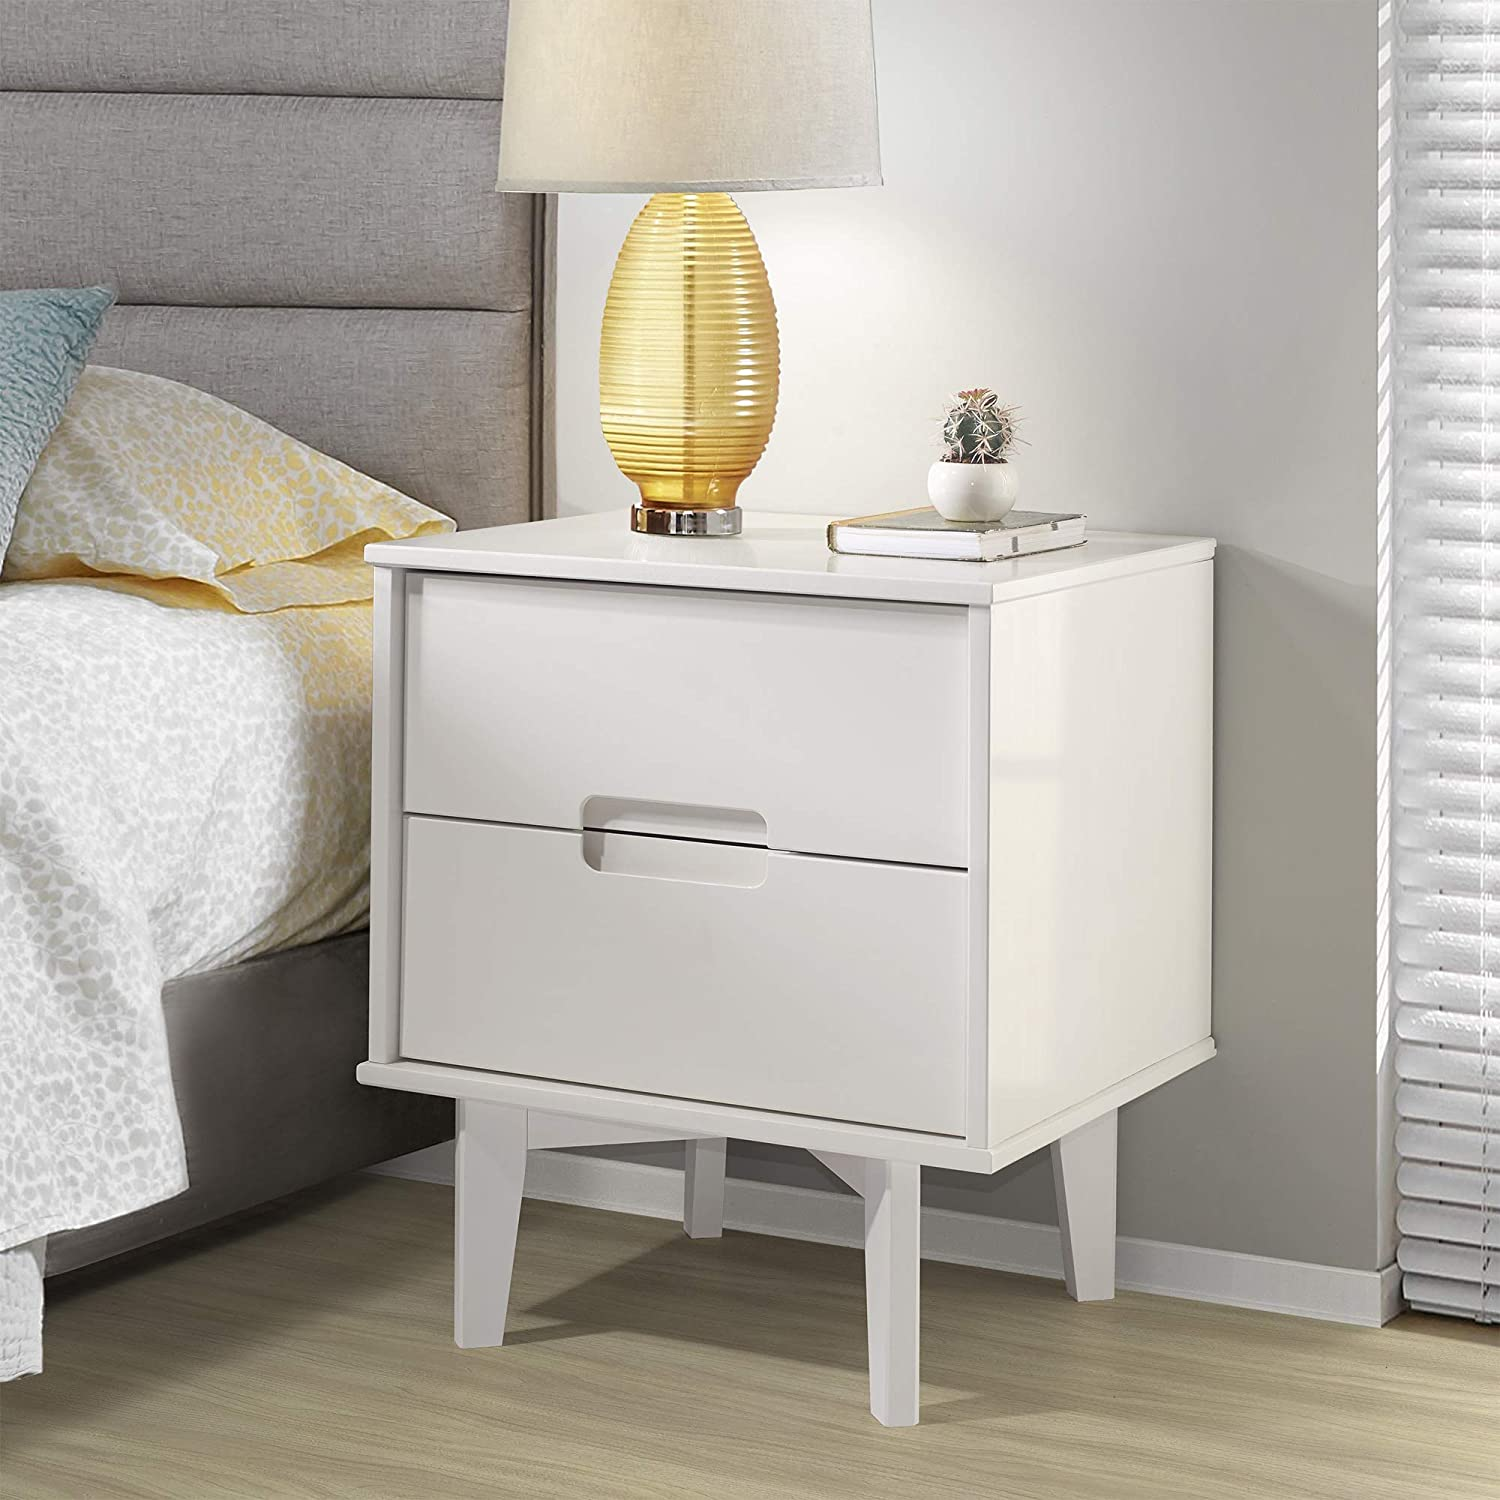 """WE Furniture Solid Wood 2-Drawer Groove Handle End Side Table Nightstand with Storage, 24"""" H, White"""